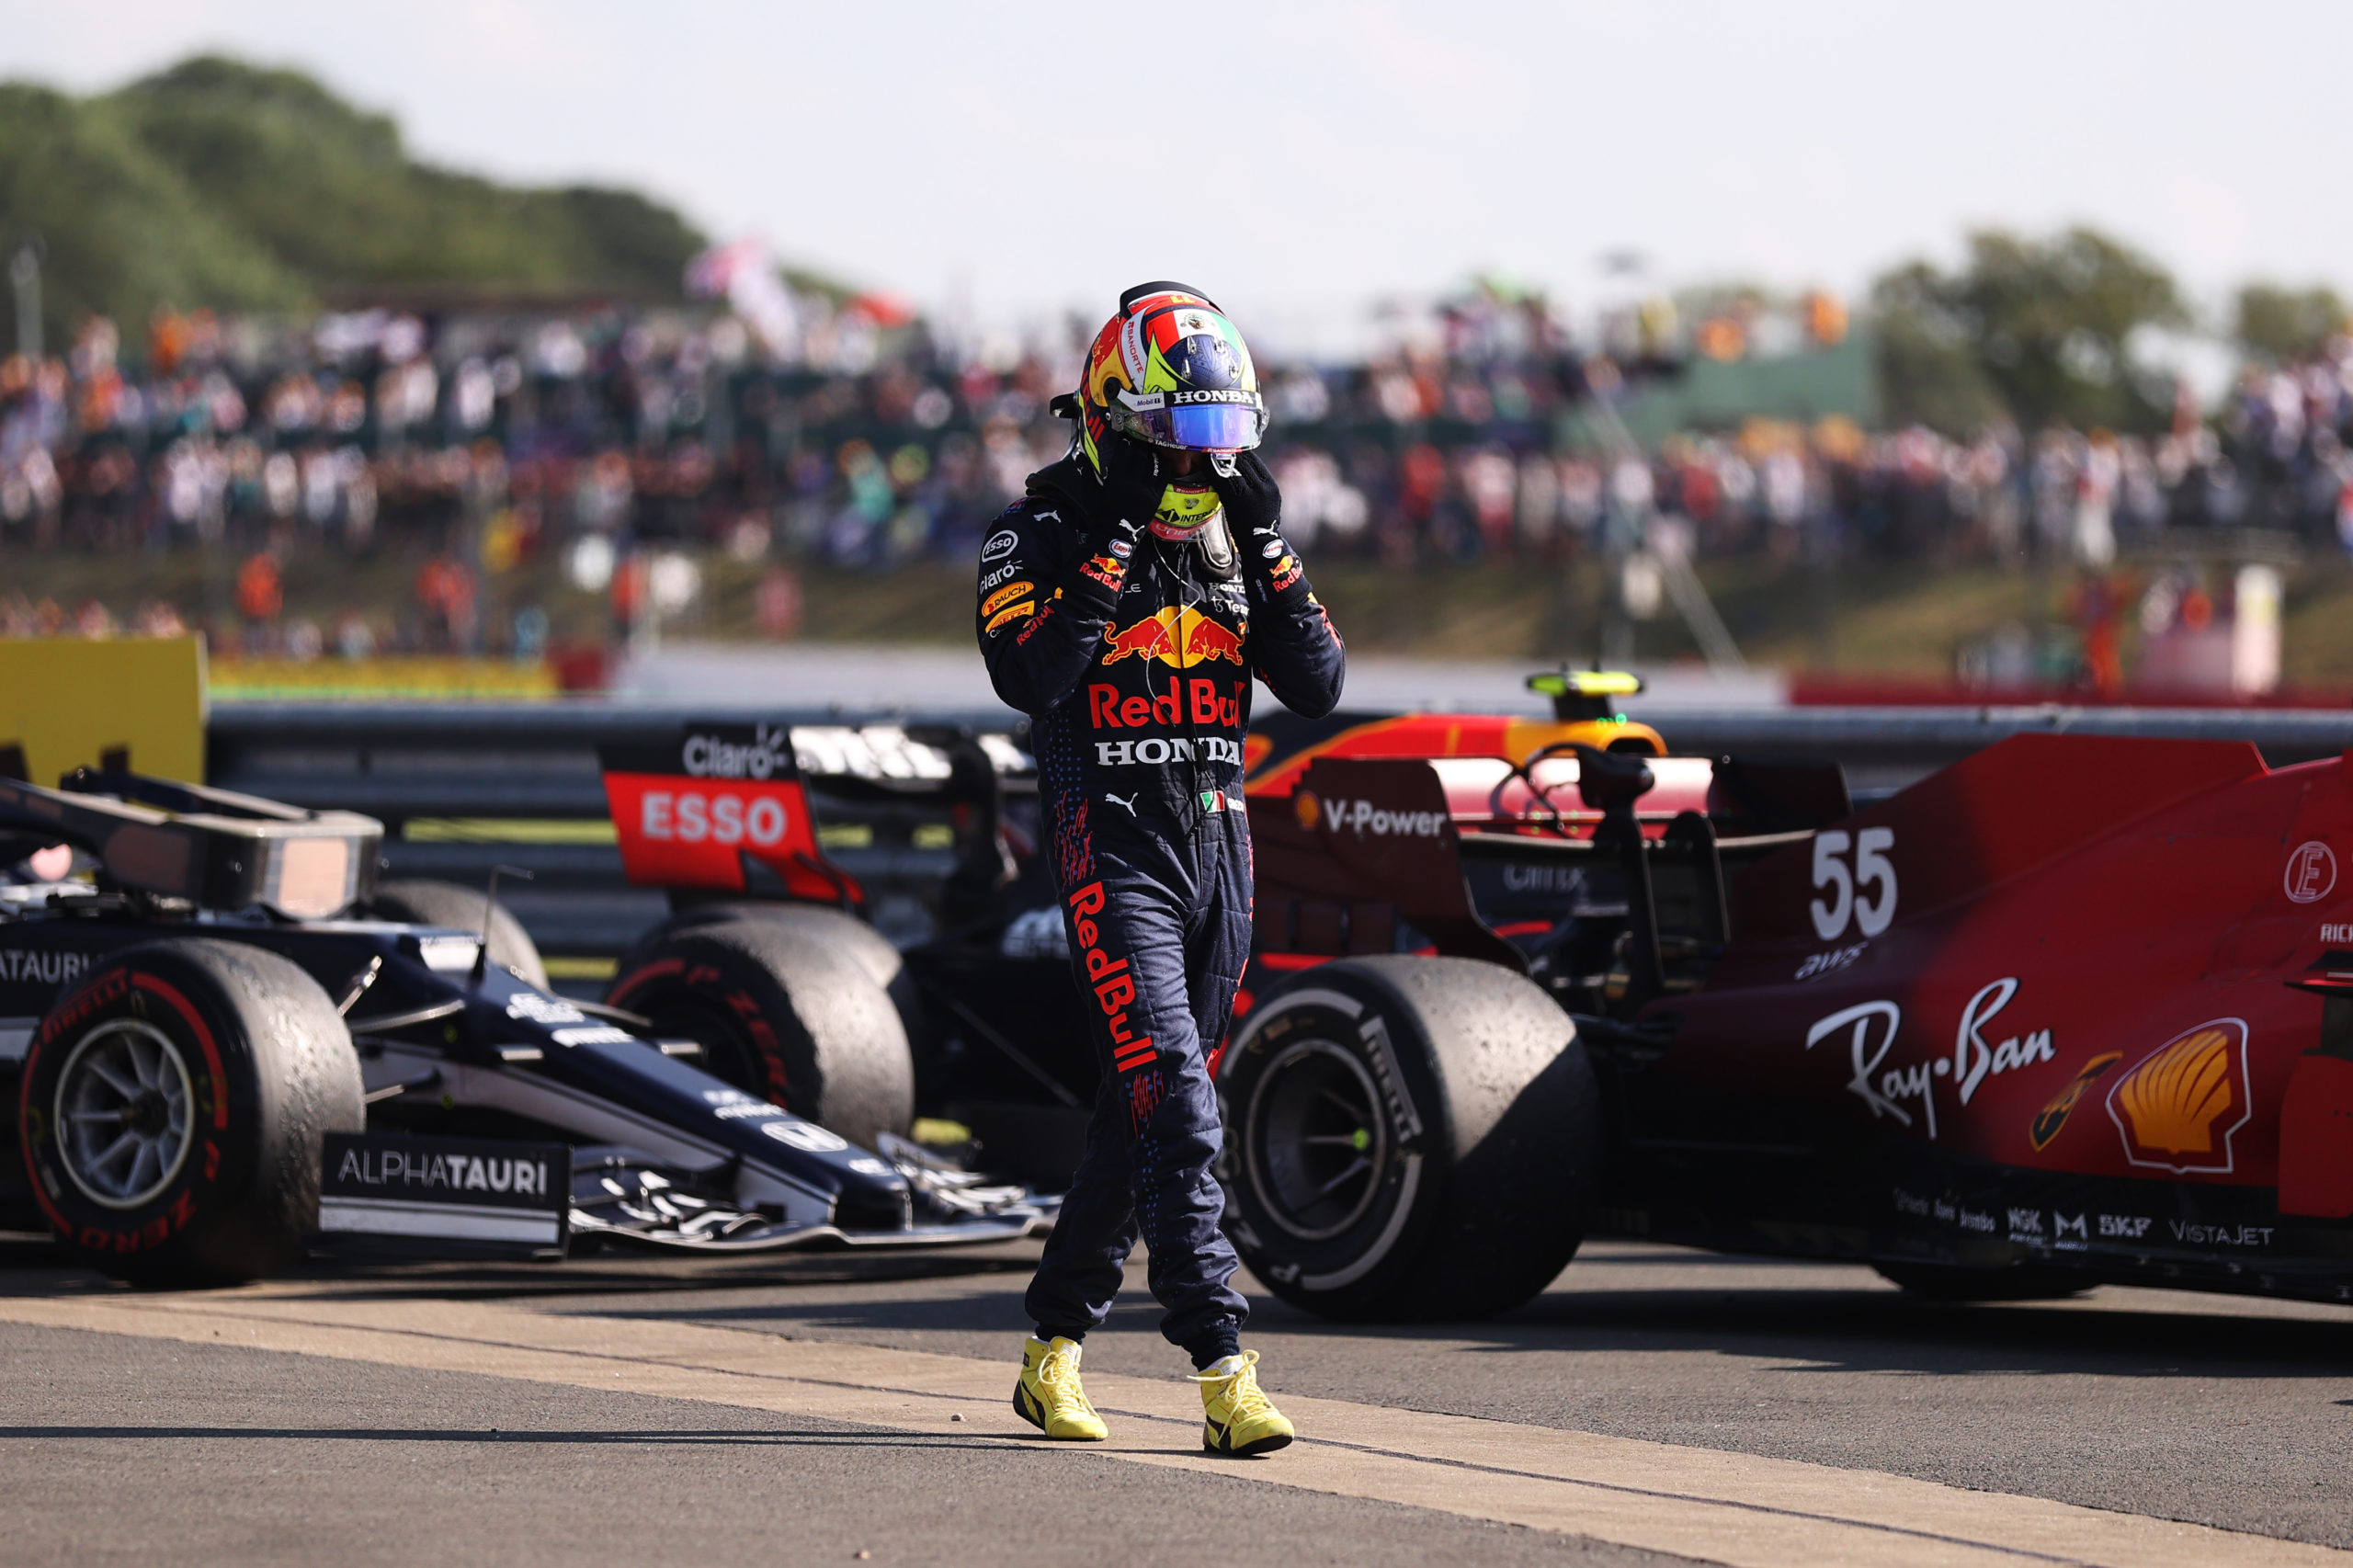 NORTHAMPTON, ENGLAND - JULY 18: Sergio Perez of Mexico and Red Bull Racing walks in parc ferme during the F1 Grand Prix of Great Britain at Silverstone on July 18, 2021 in Northampton, England. (Photo by Lars Baron/Getty Images) // Getty Images / Red Bull Content Pool  // SI202107180273 // Usage for editorial use only //